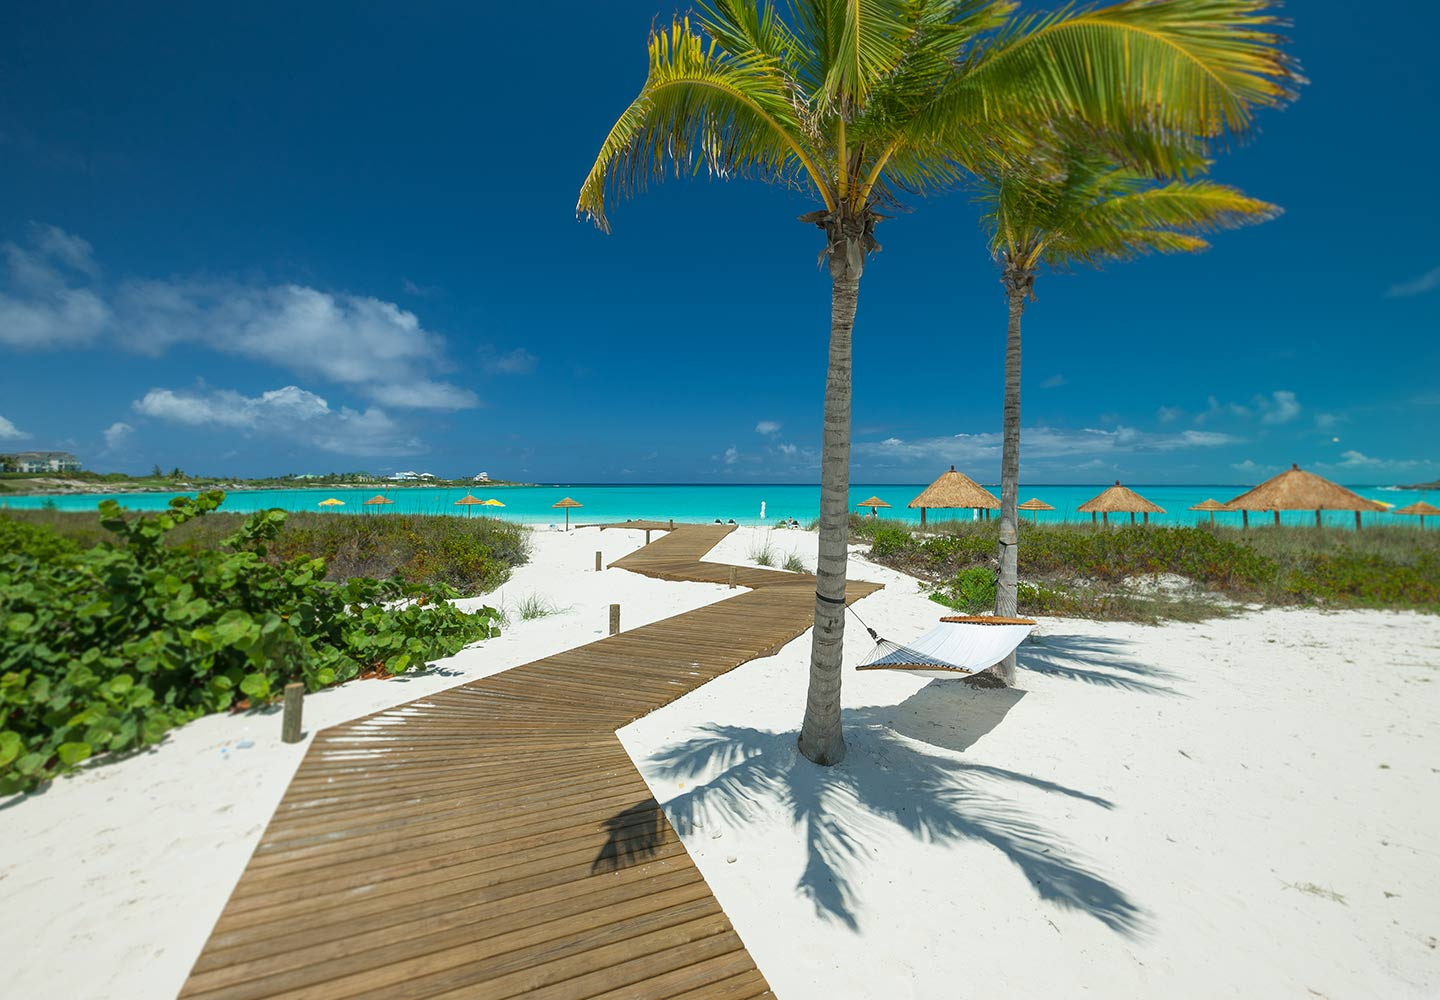 Sandals Emerald Bay Great Exuma The Bahamas Excess